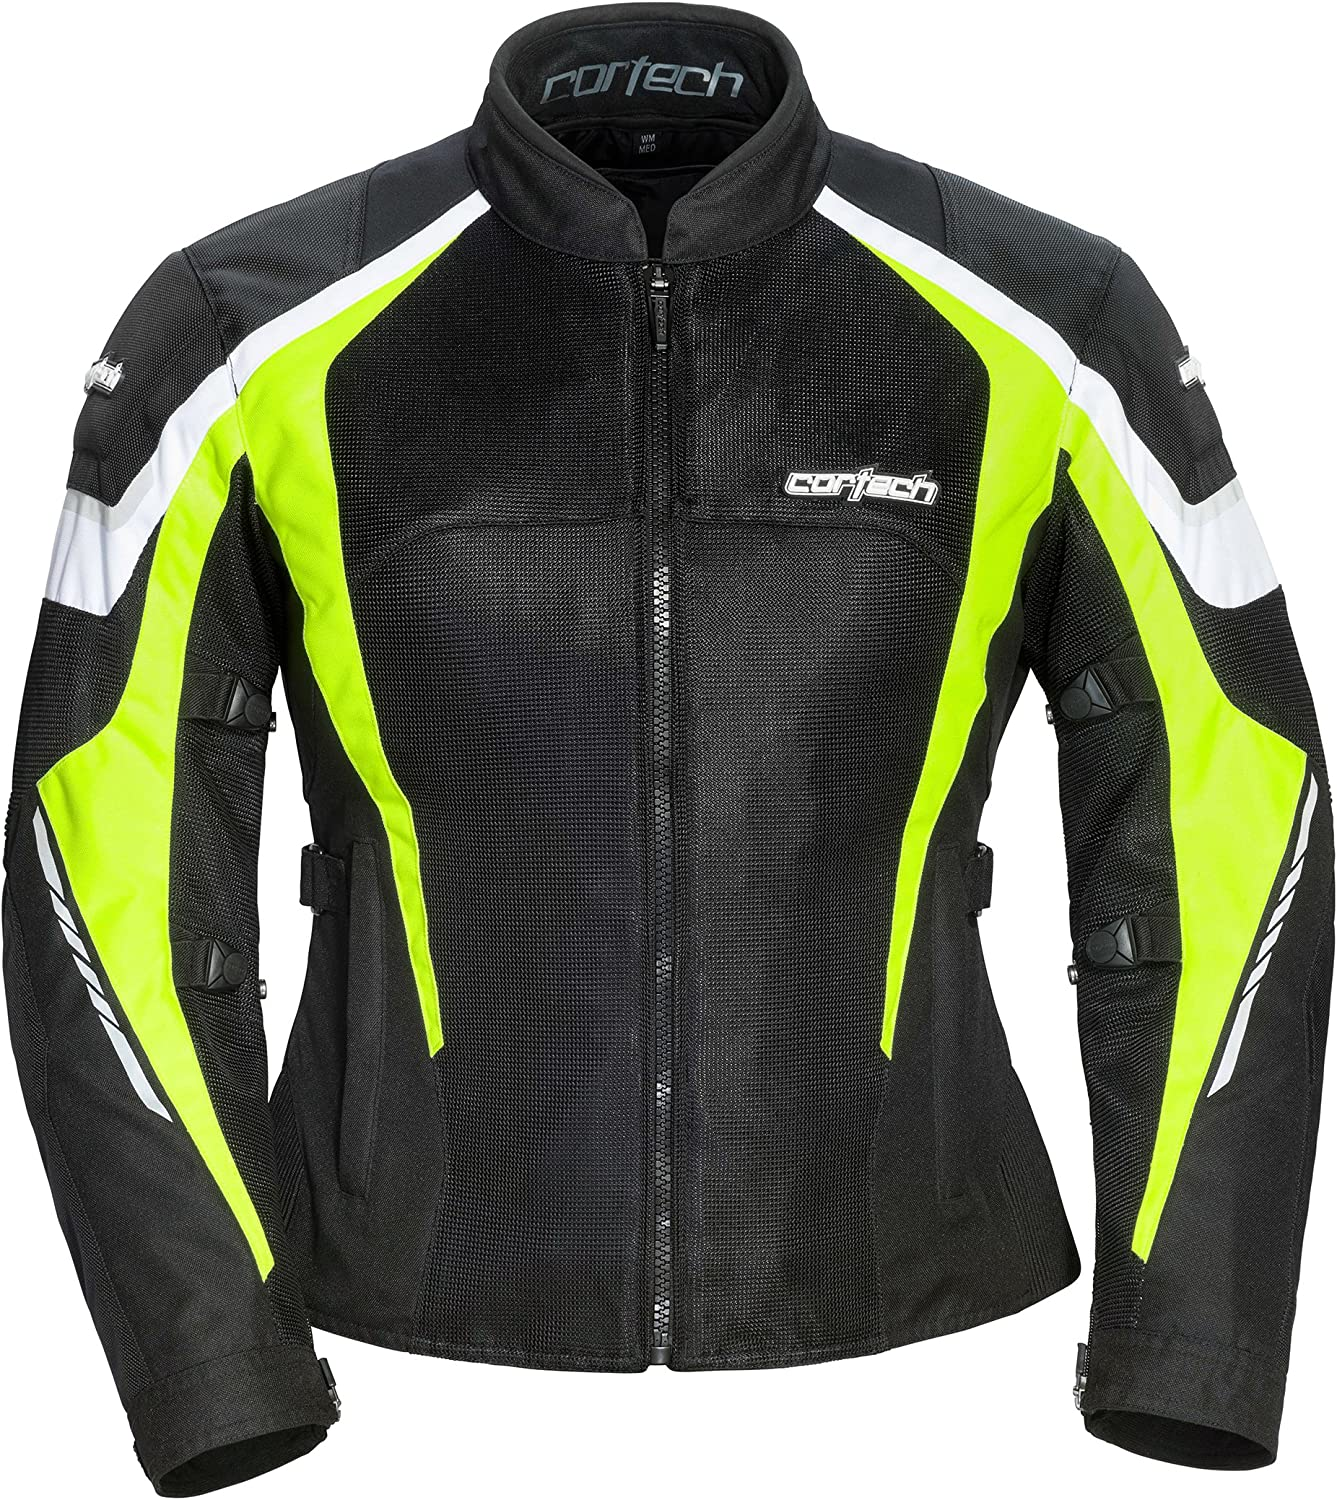 Cortech Women's GX-Sport Air 5.0 Jacket